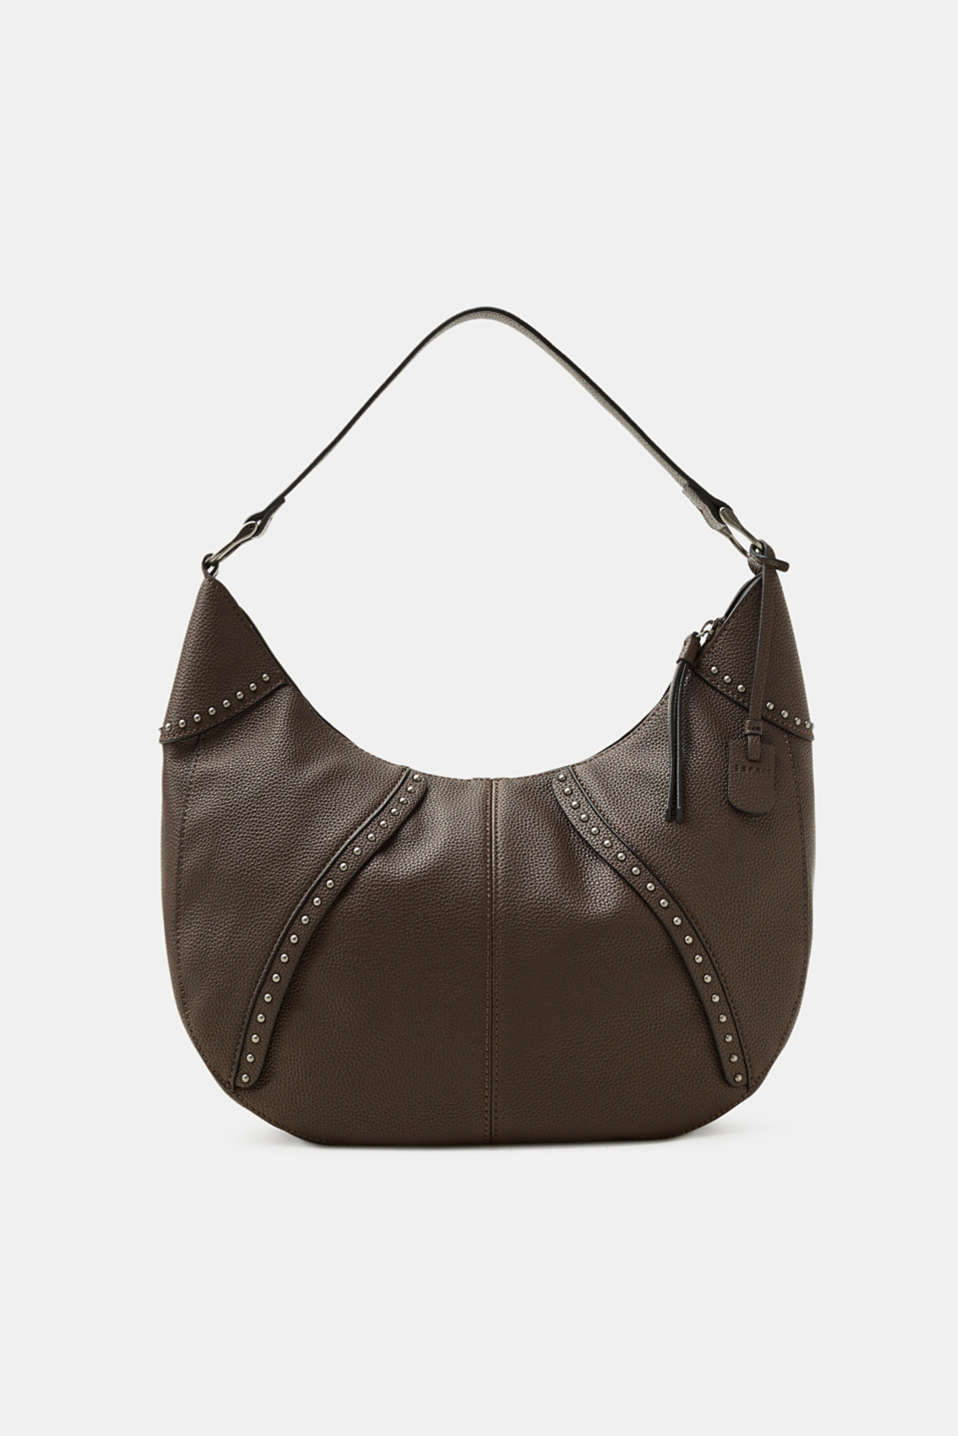 Esprit - Hobo bag with studs, in faux leather